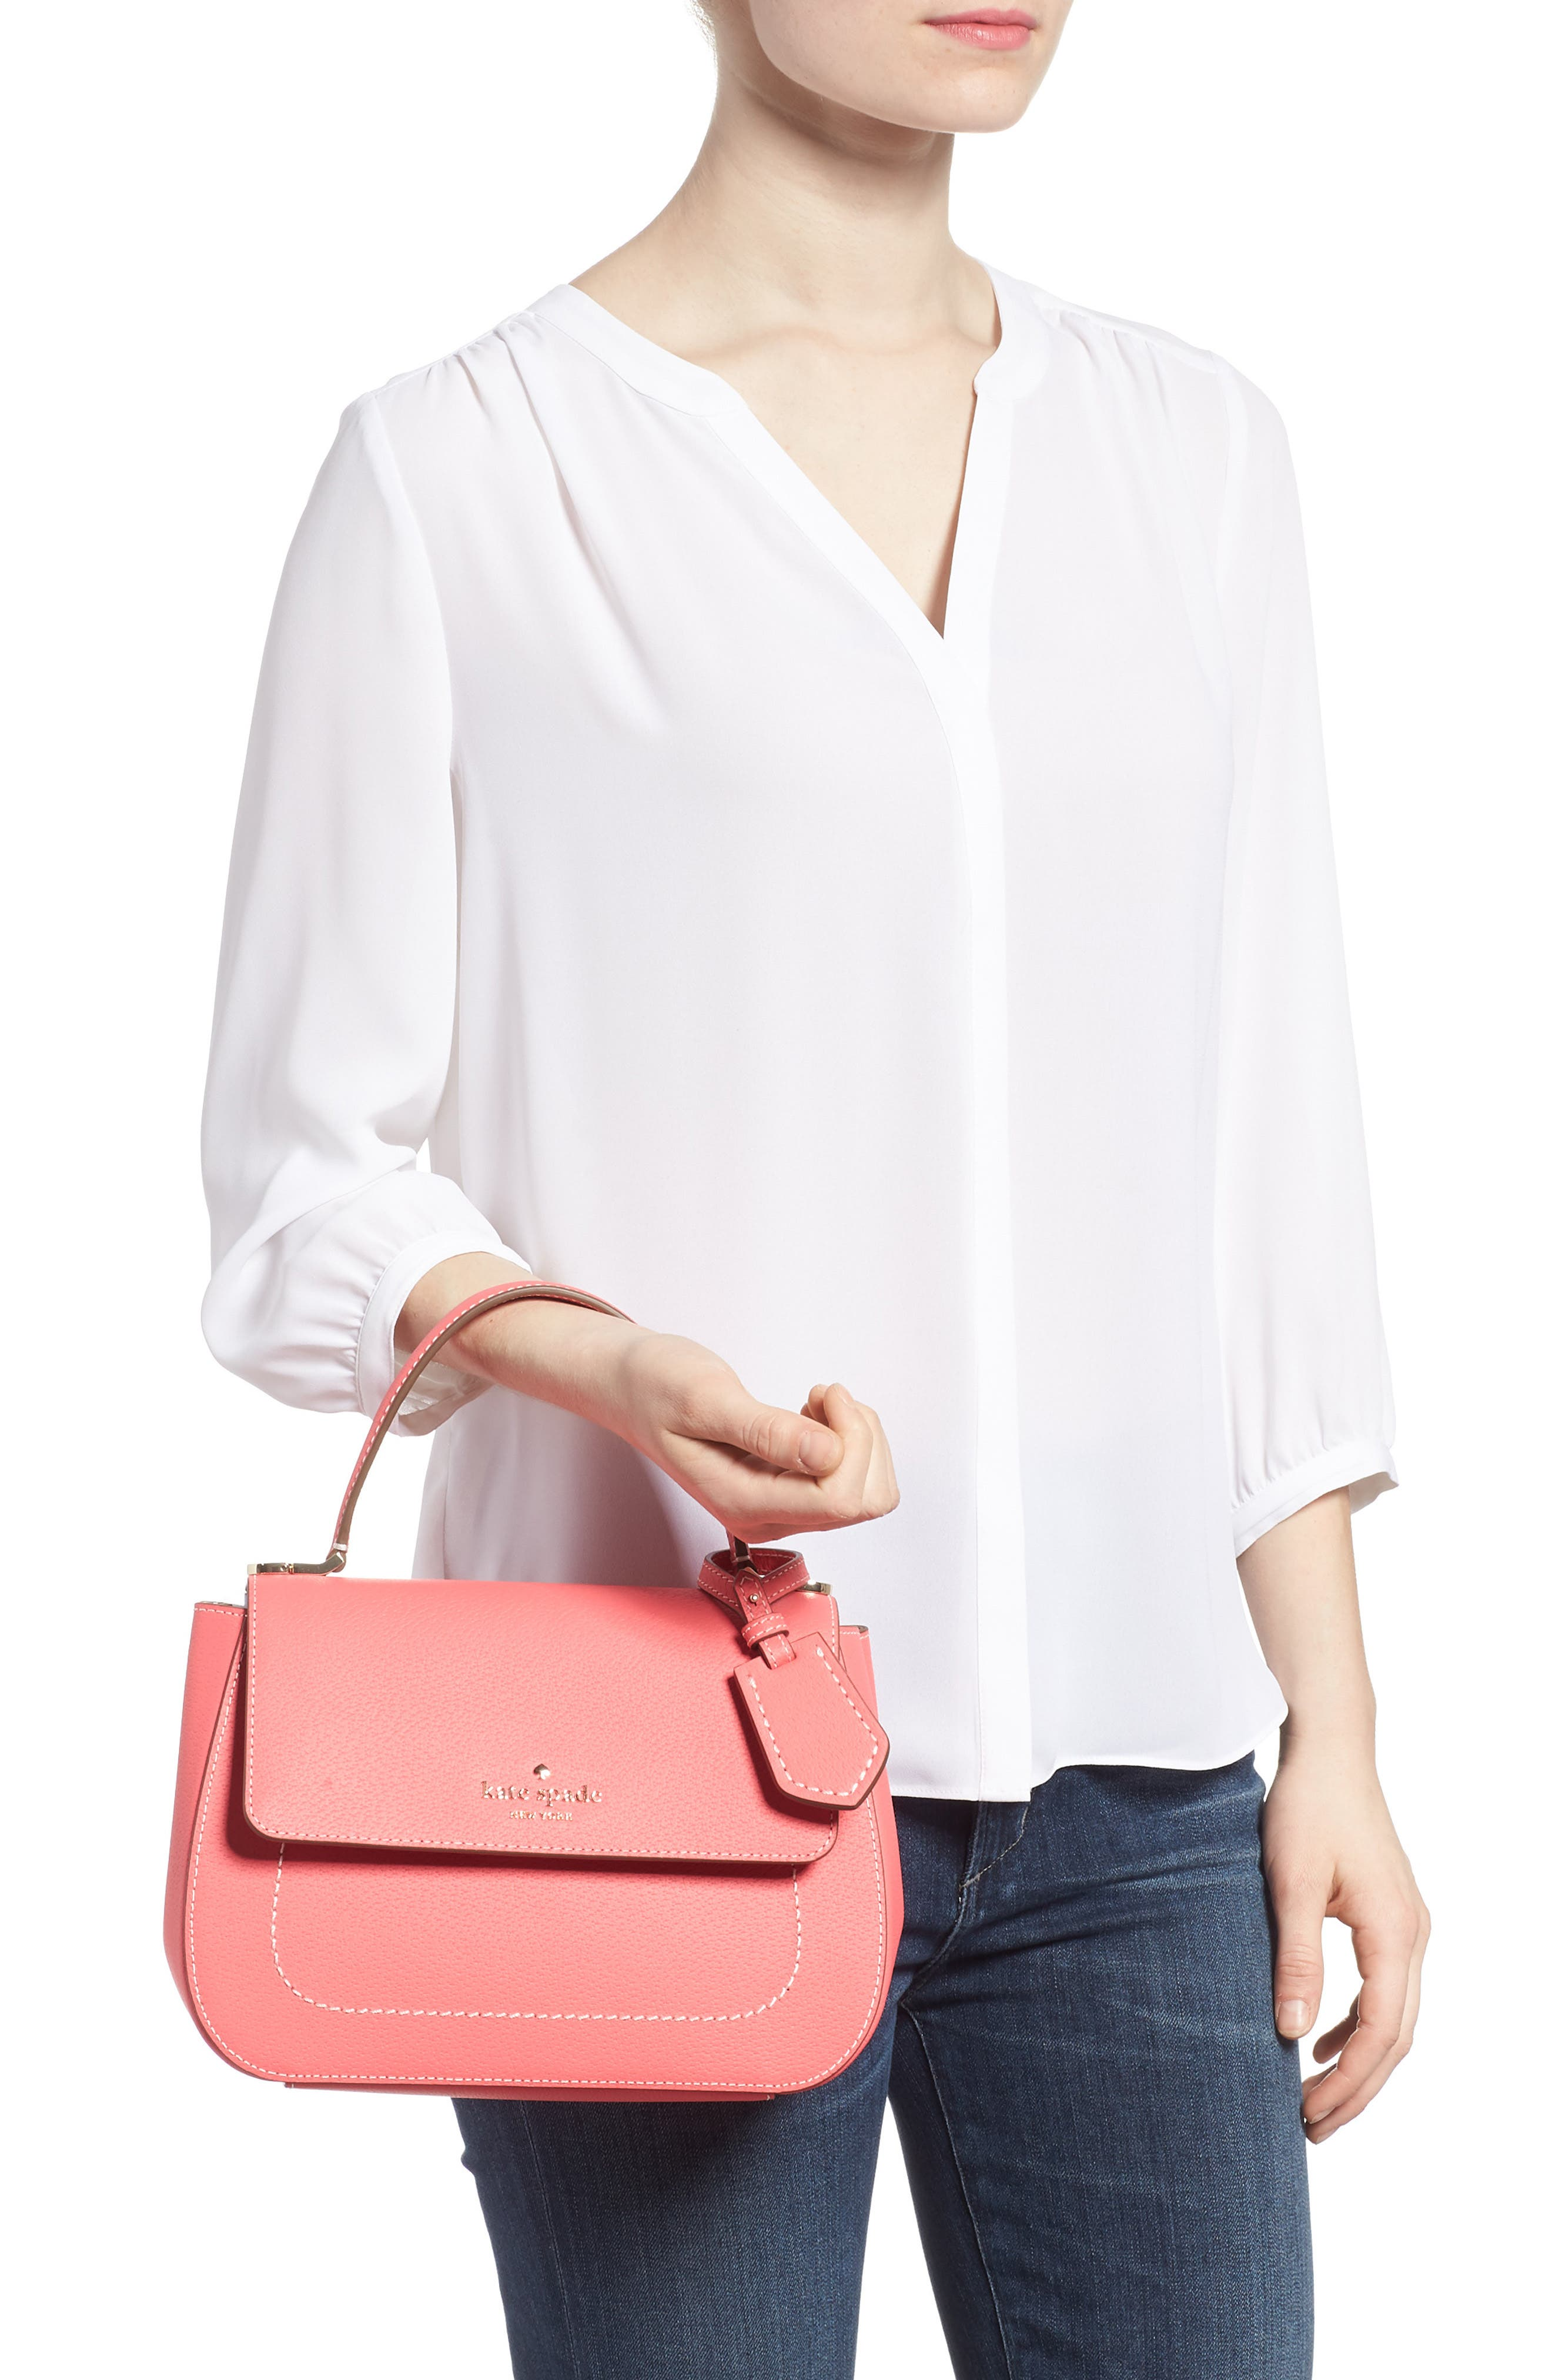 thompson street - justina leather satchel,                             Alternate thumbnail 2, color,                             Bright Flamingo